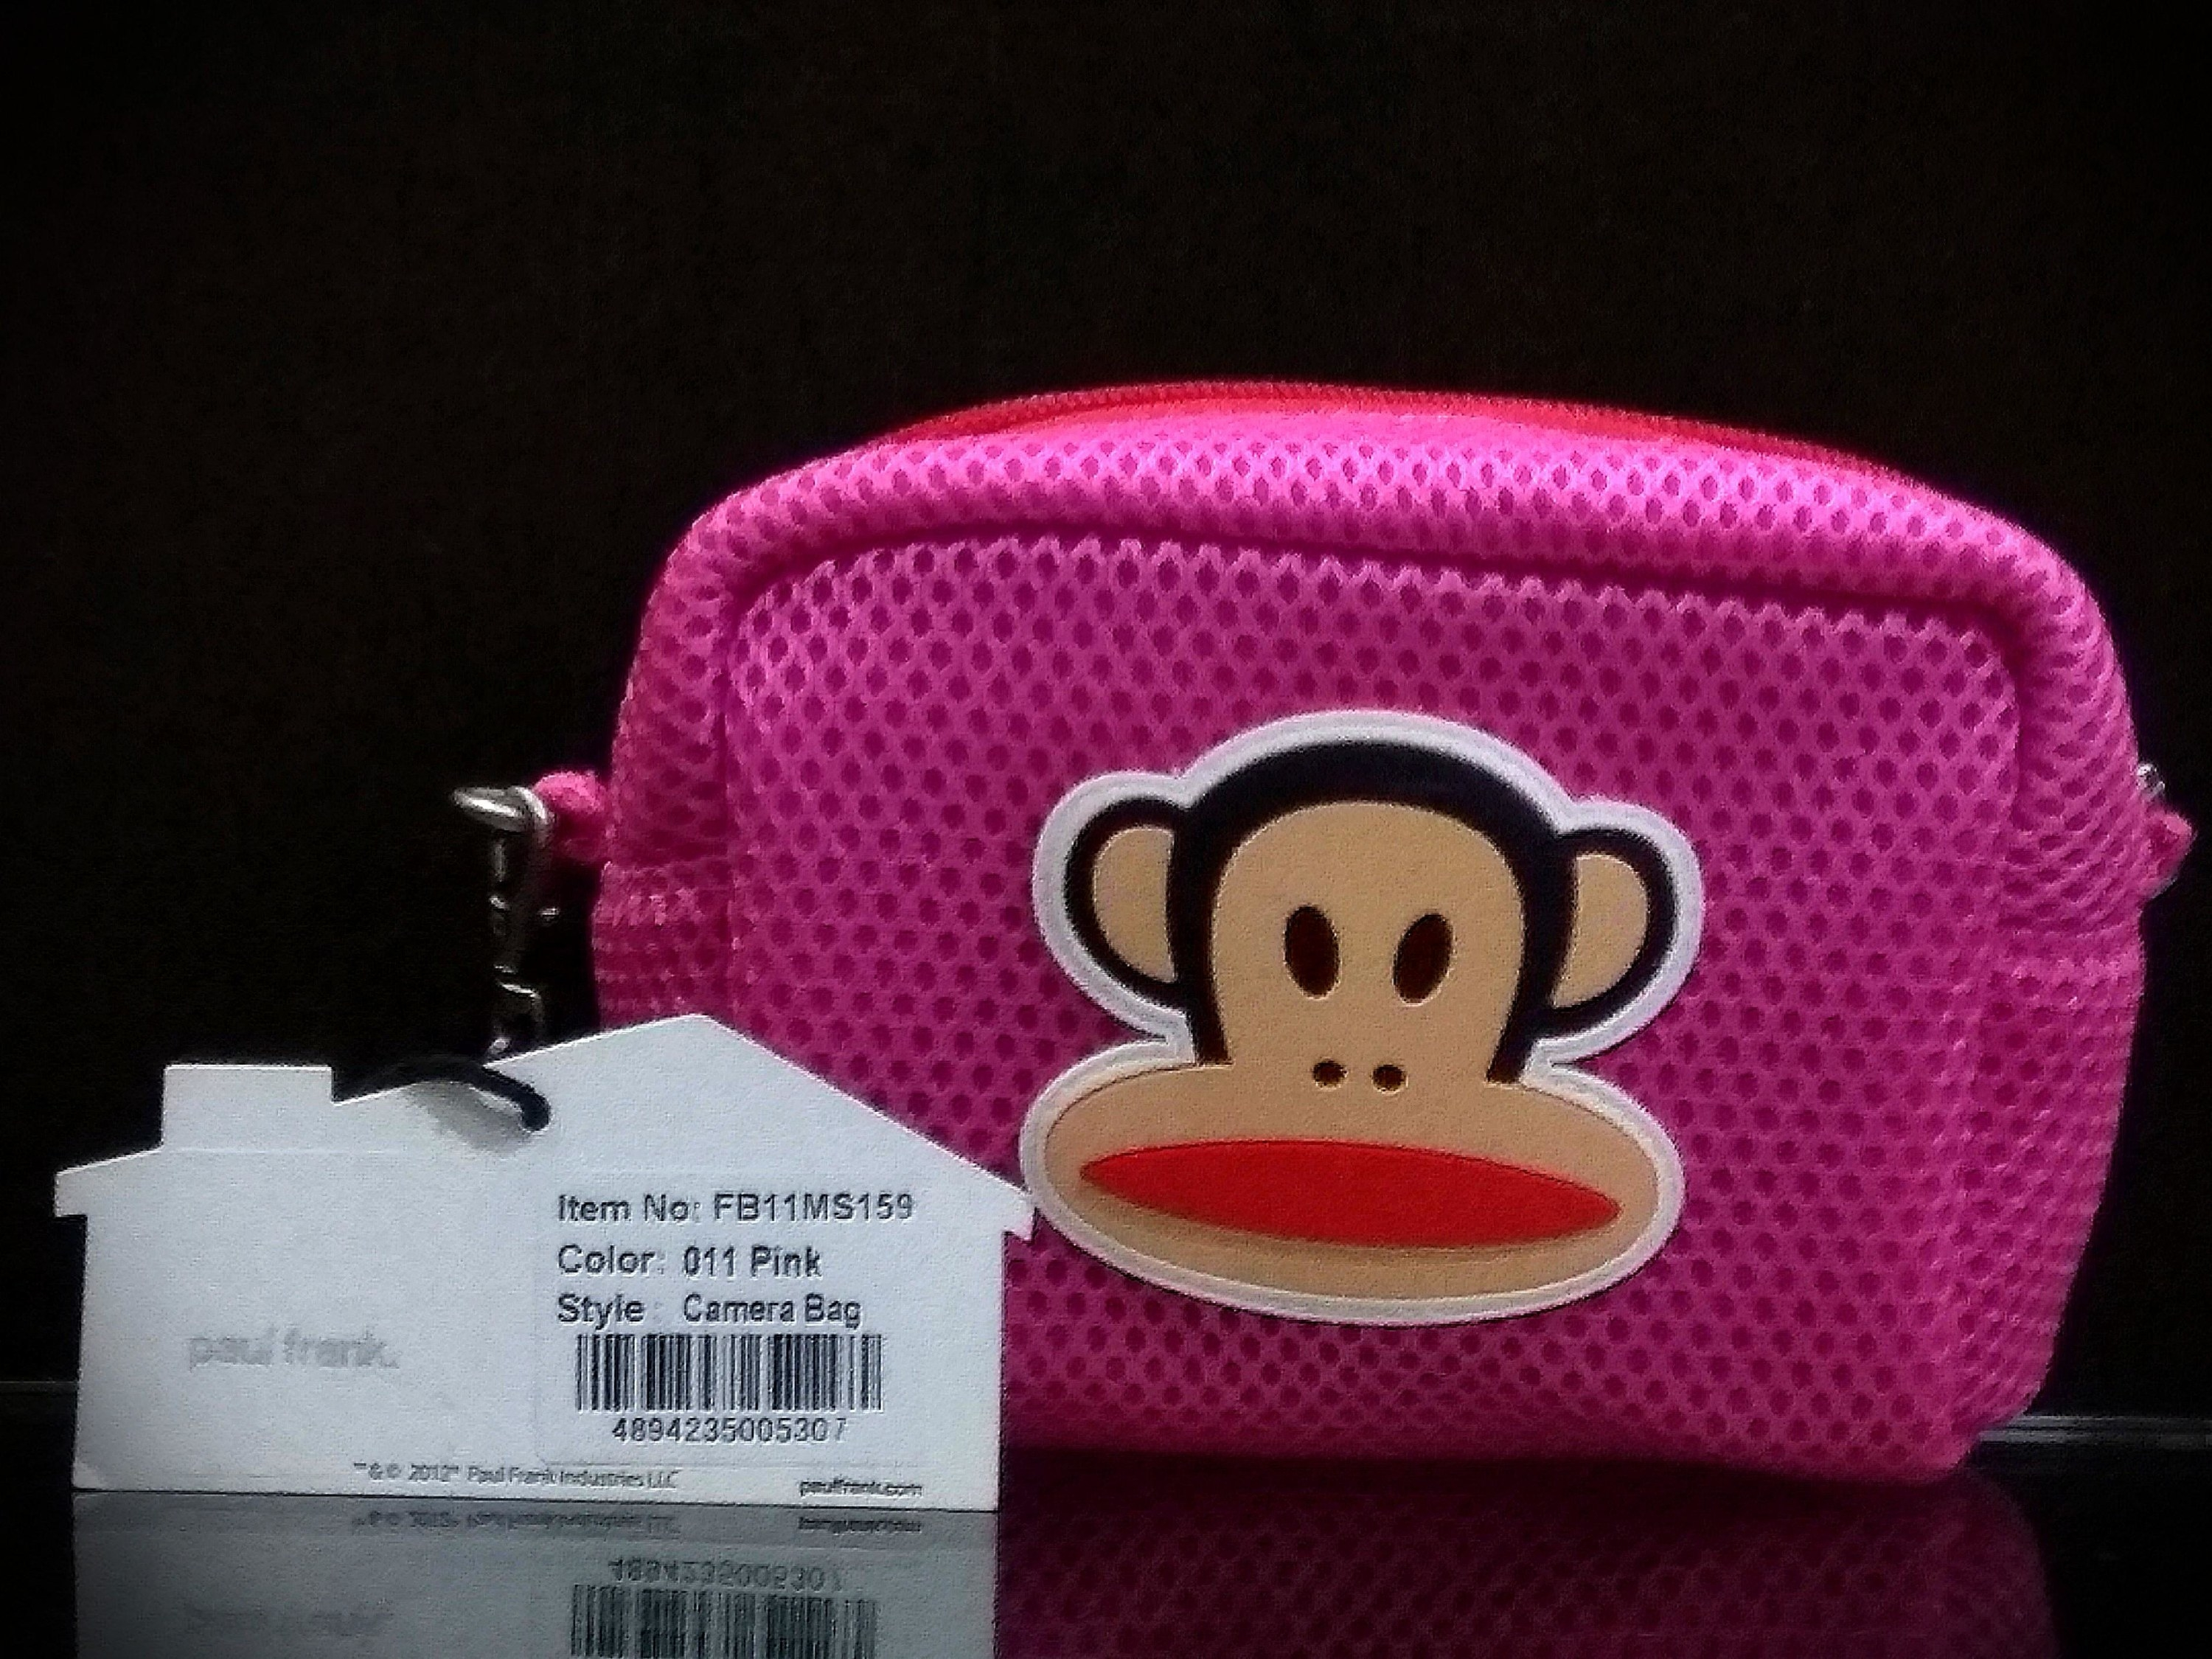 A hot pink Paul Frank camera case with the cartoon face of Julius the Monkey on it.